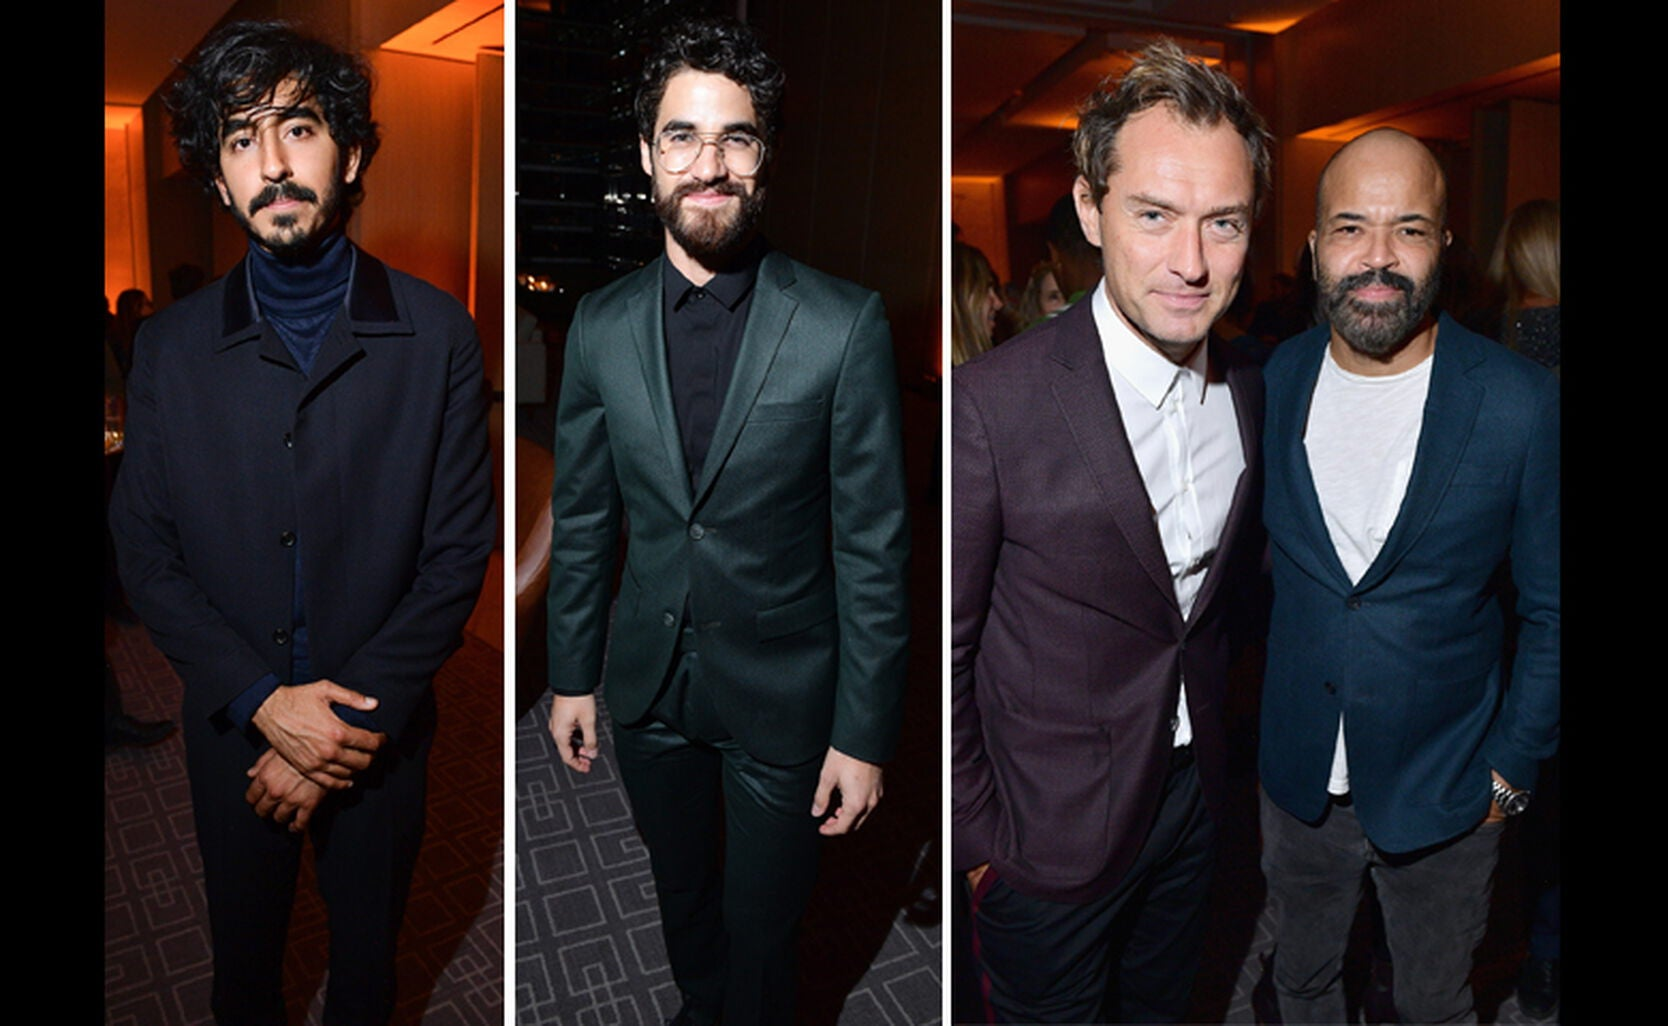 Dev Patel, Darren Criss, Jude Law with Jeffrey Wright